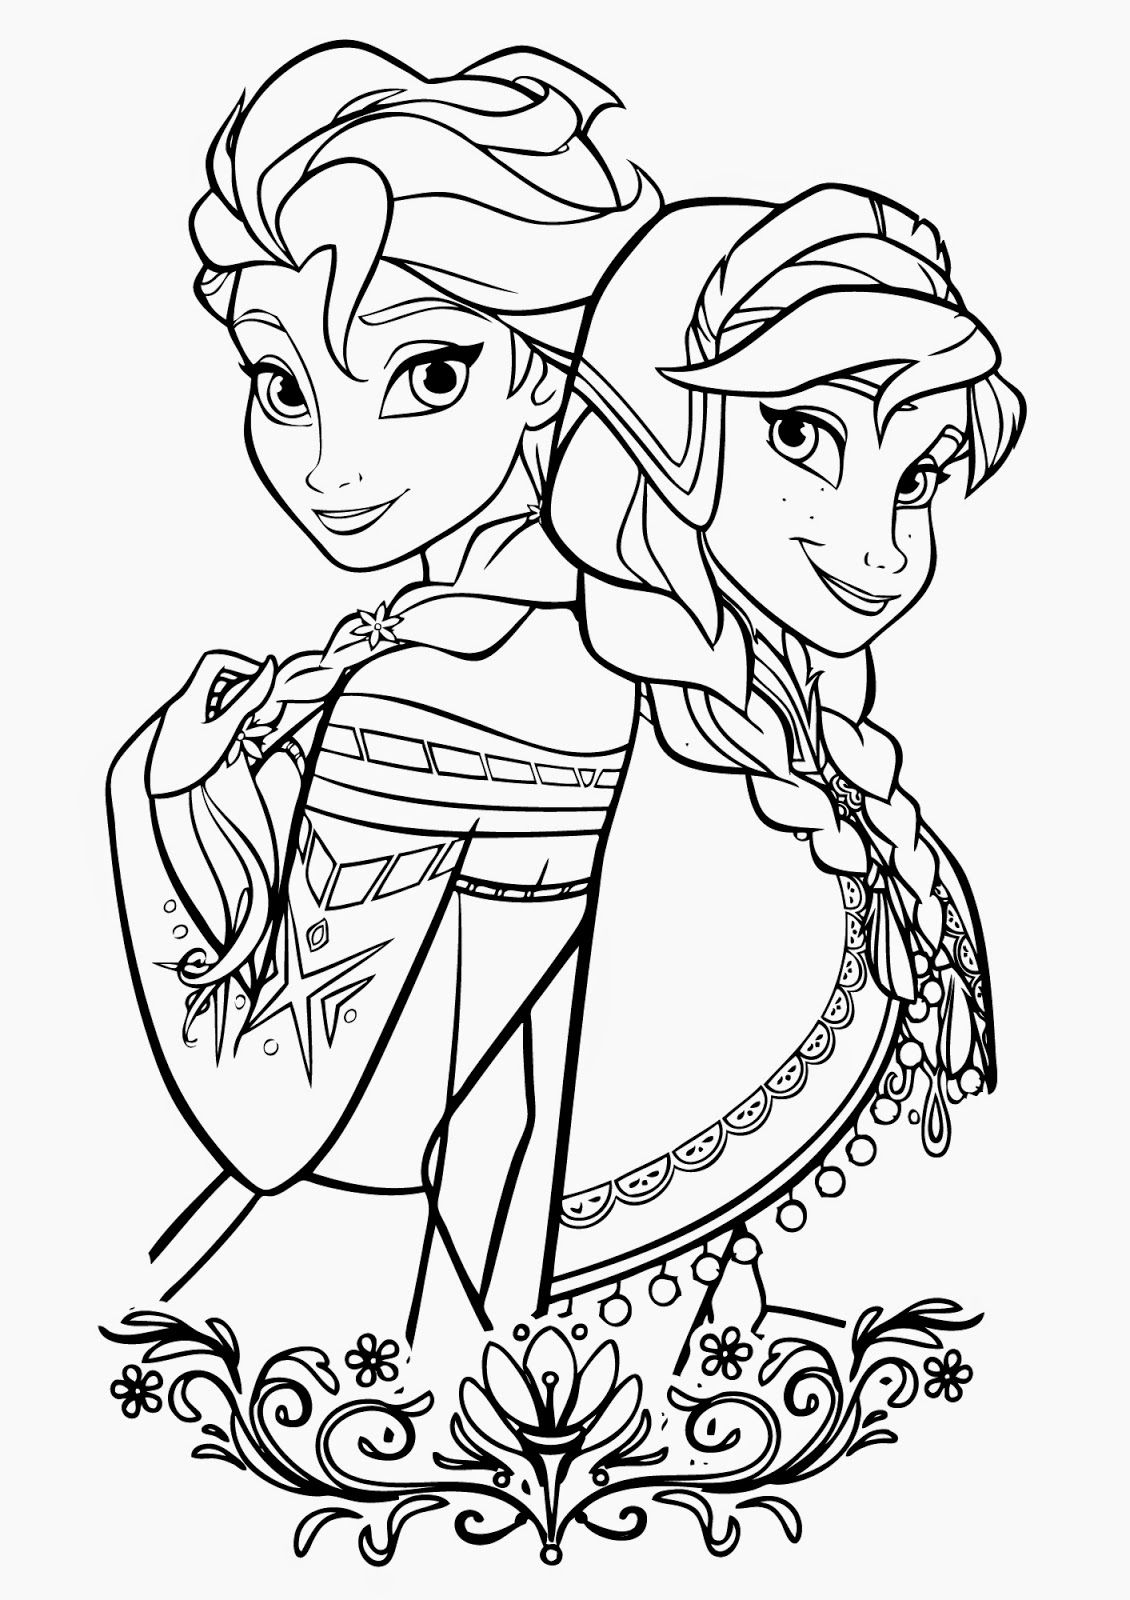 Paint pages to color online - Get The Latest Free Elsa Freeze Coloring Page Images Favorite Coloring Pages To Print Online